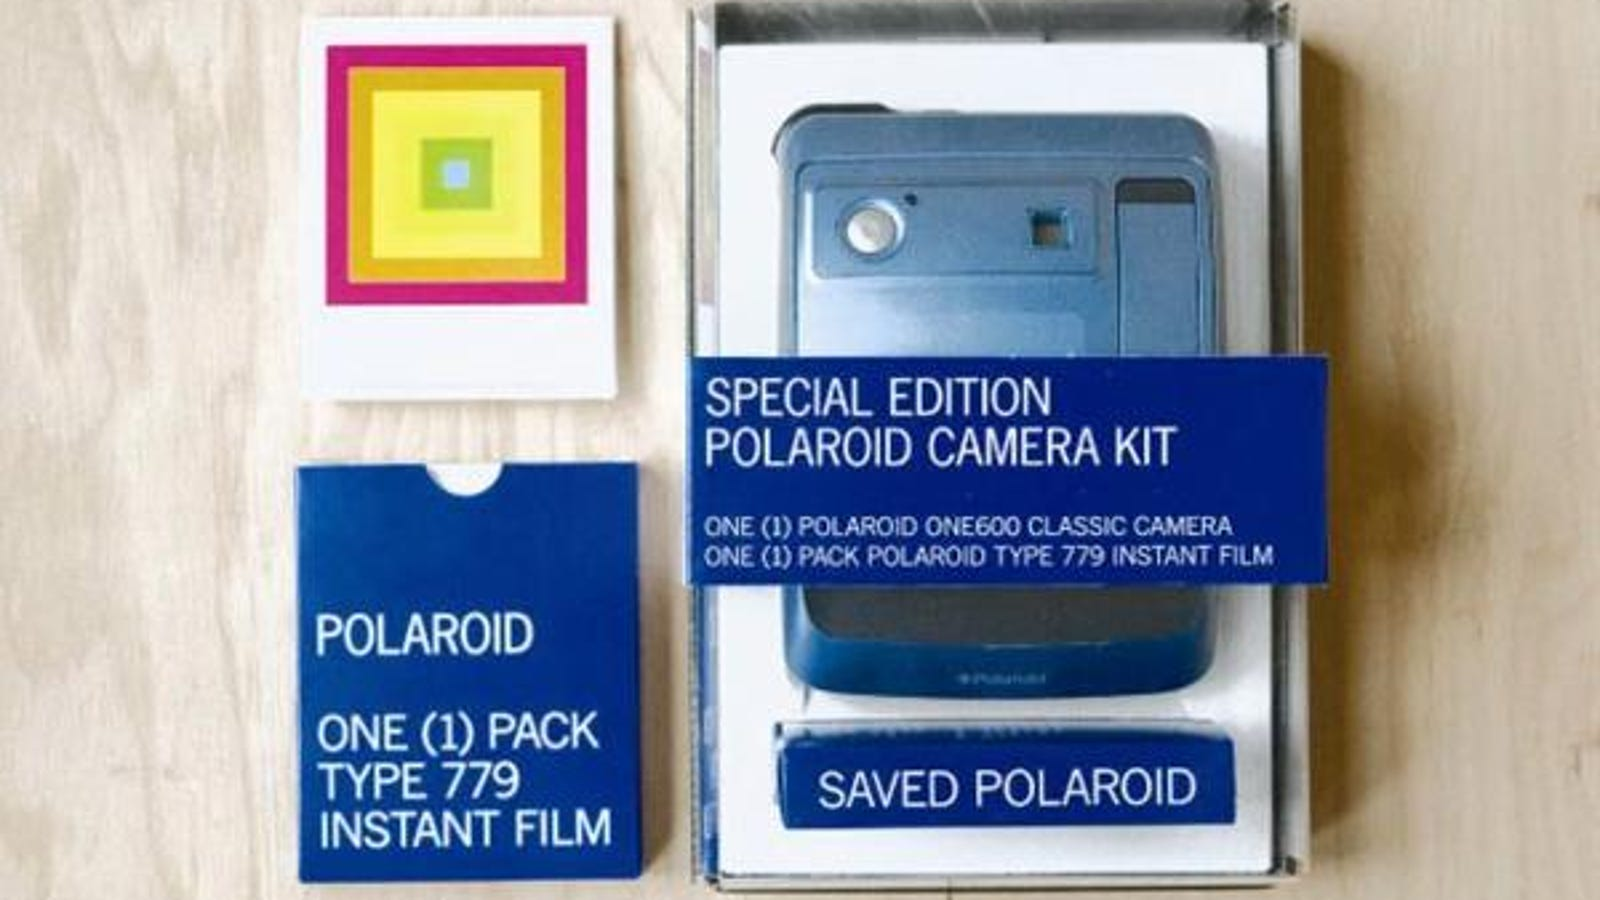 Polaroid Camera Urban Outfitters Uk : Last original polaroid instant film to be sold at urban outfitters